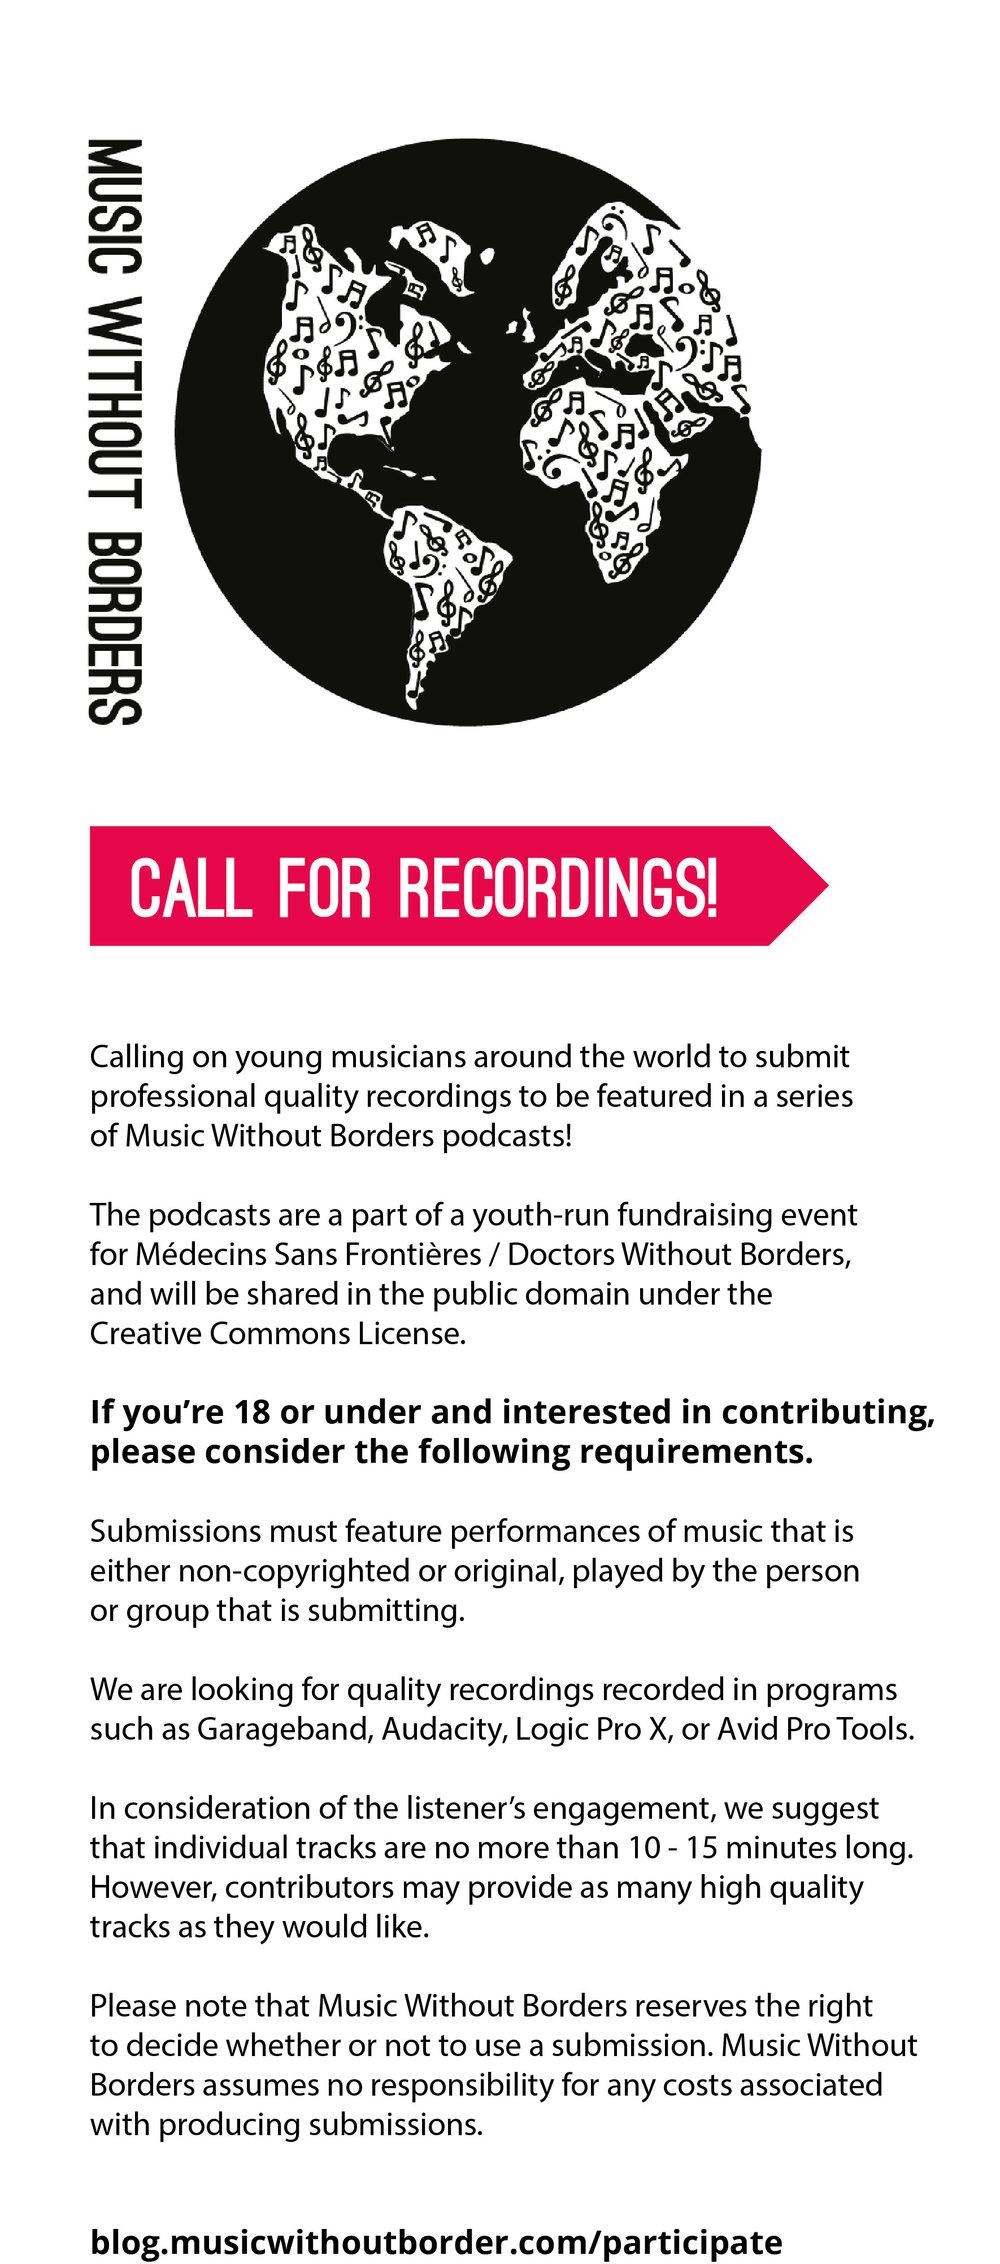 Call for Recordings.jpg